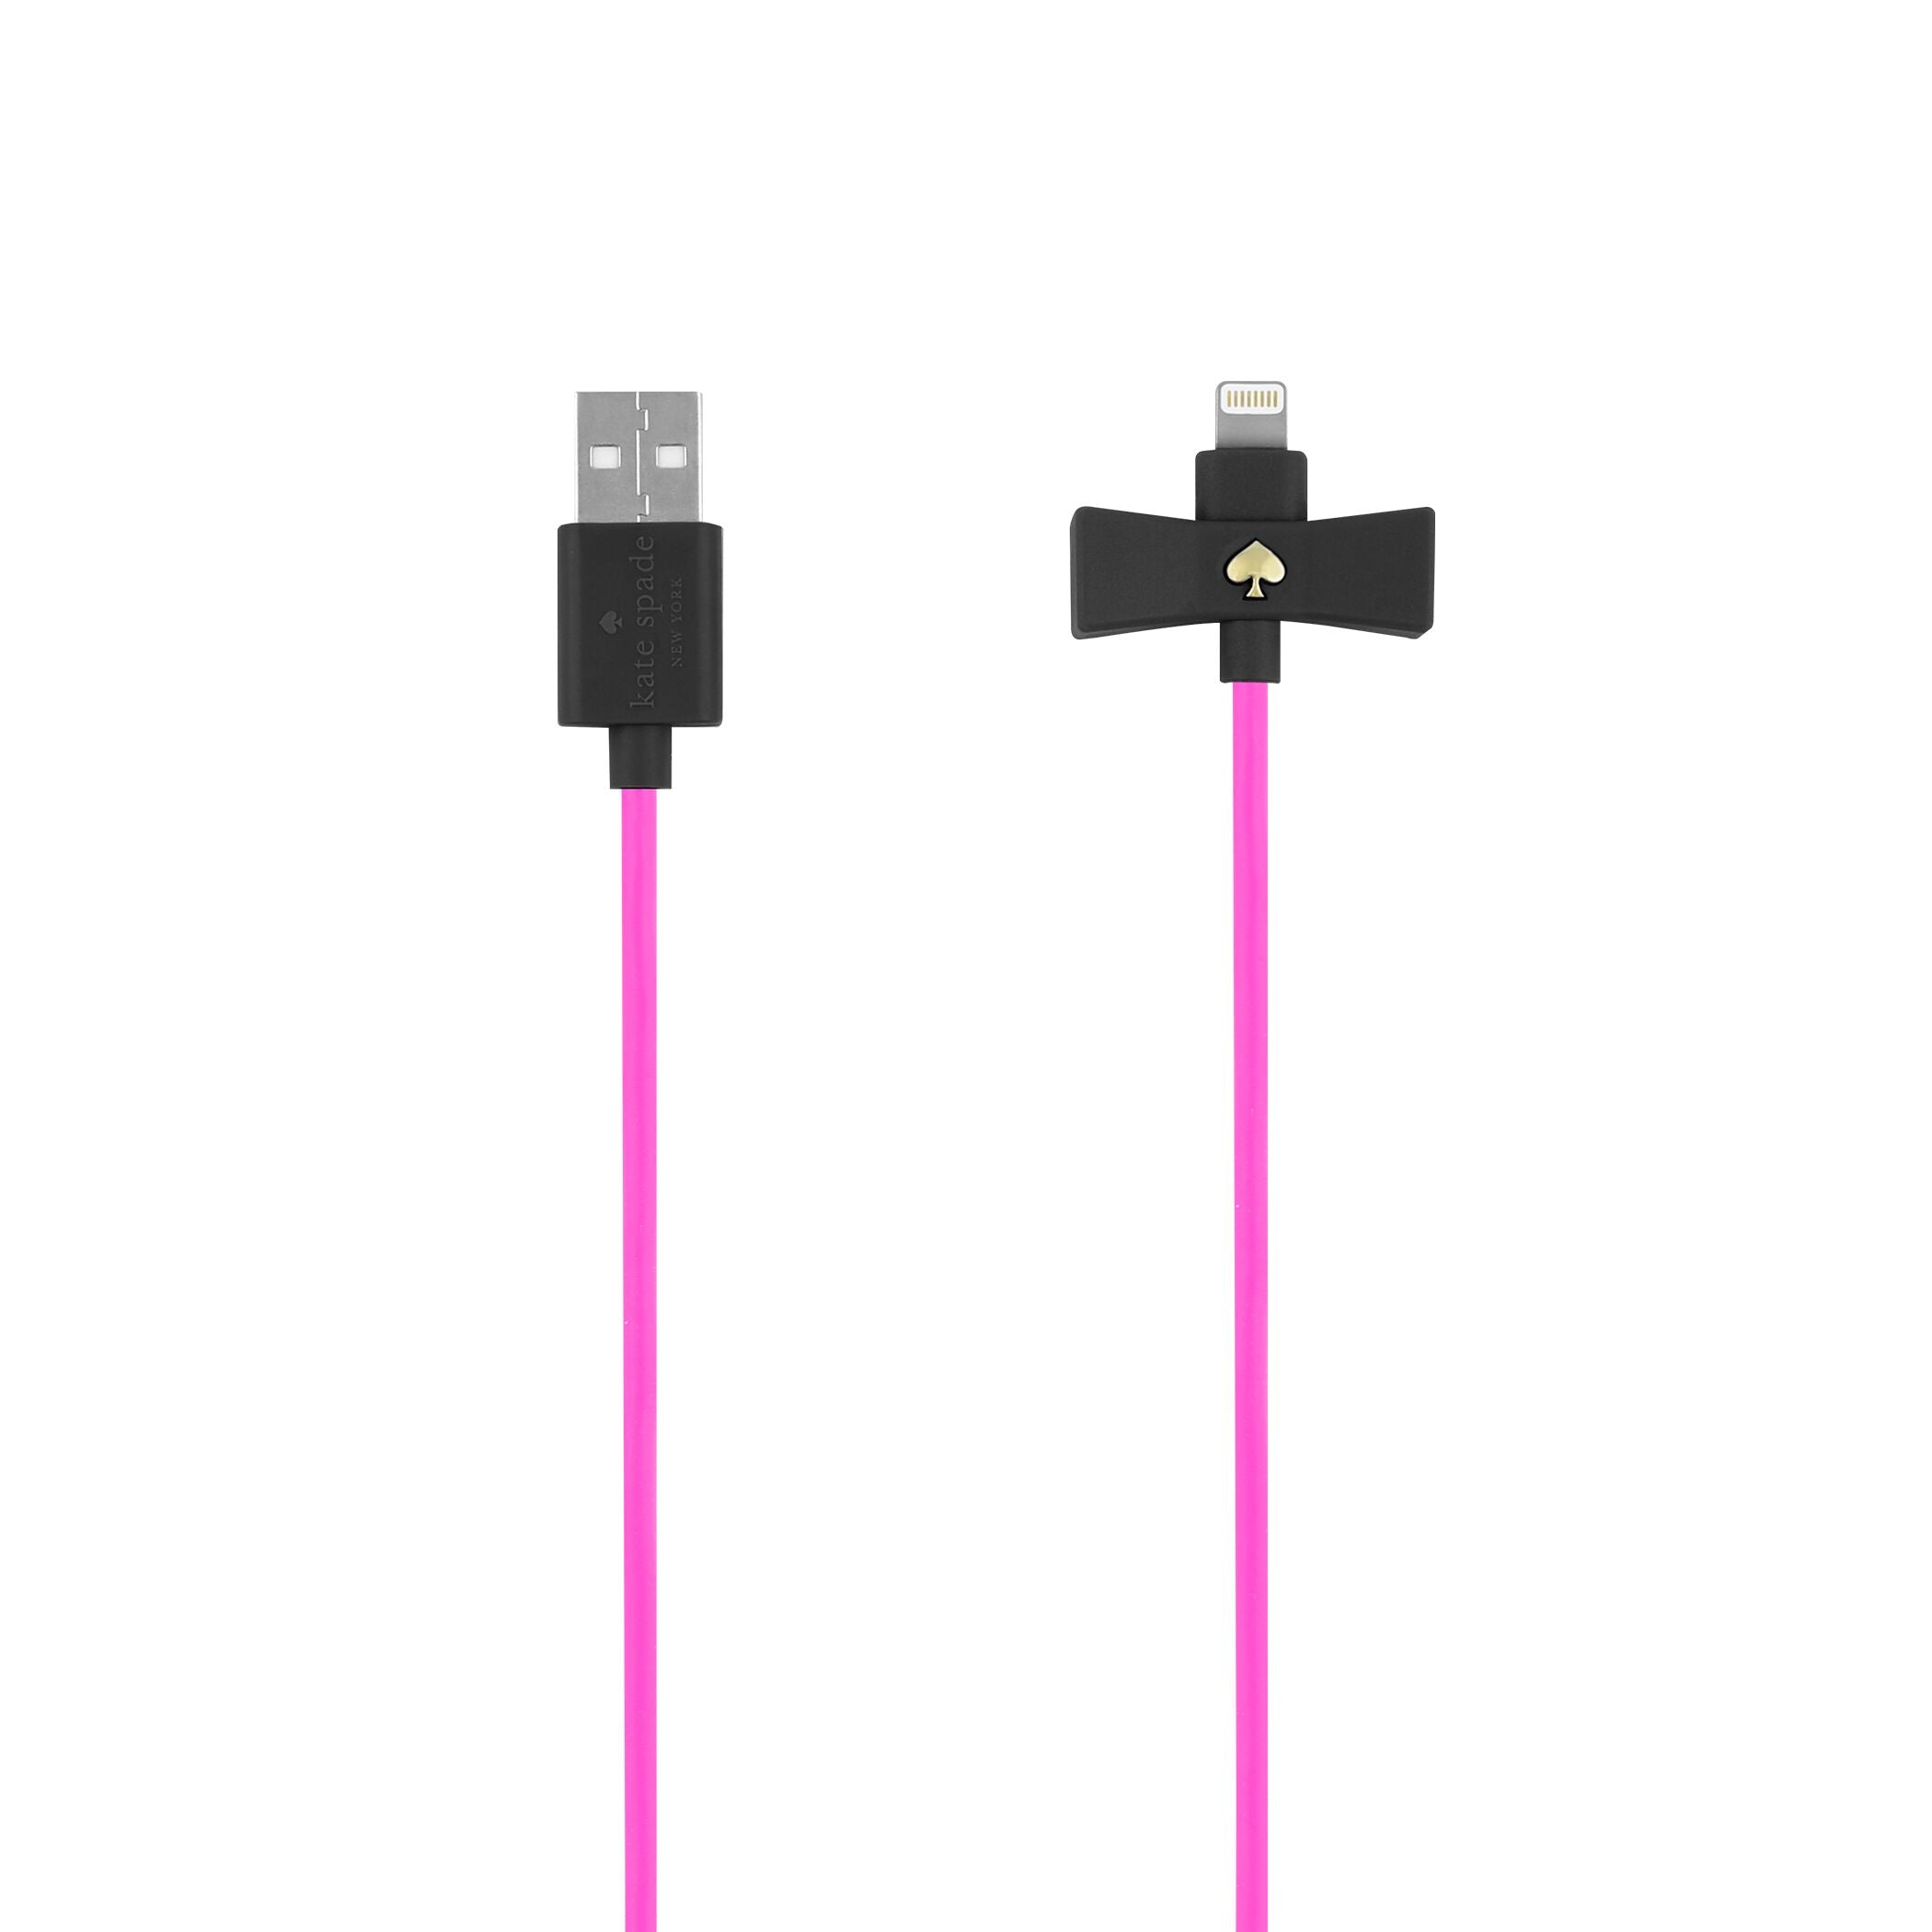 kate spade new york - Bow Charge/Sync Cable - Captive Lightning - Black Bow/Vivid Snapdragon Cable / ケーブル - FOX STORE